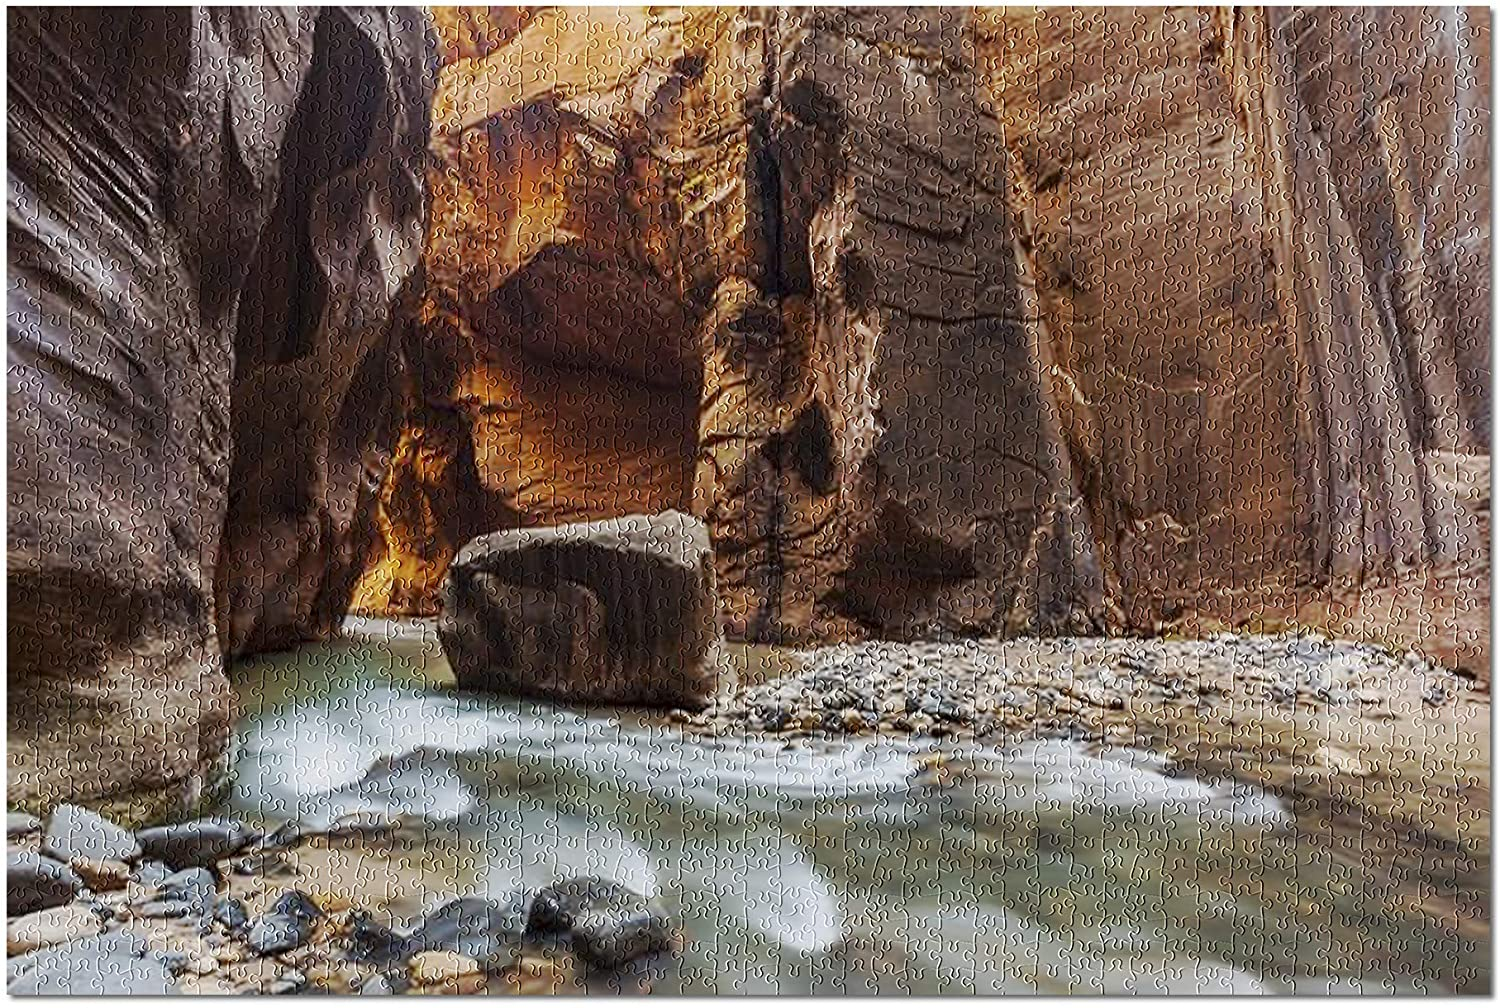 Zion National Park, Utah - The Narrows Trail 9000191 (Premium 1000 Piece Jigsaw Puzzle for Adults, 19x27)